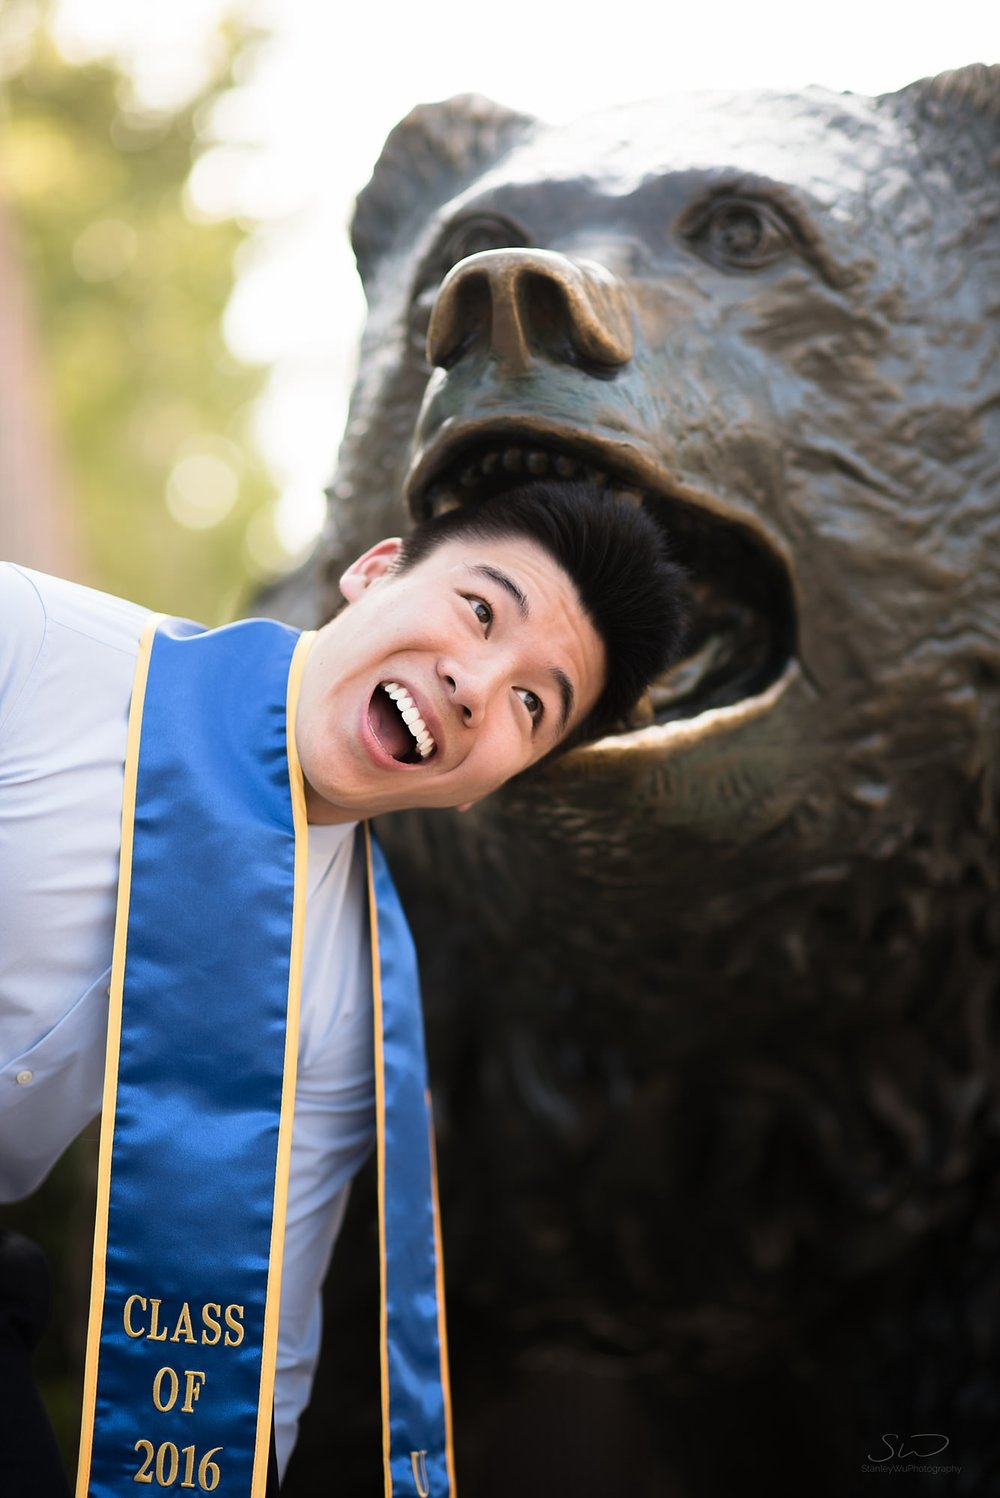 fun graduation senior portrait of guy sticking his head into a bruin bear statue mouth at ucla in los angeles